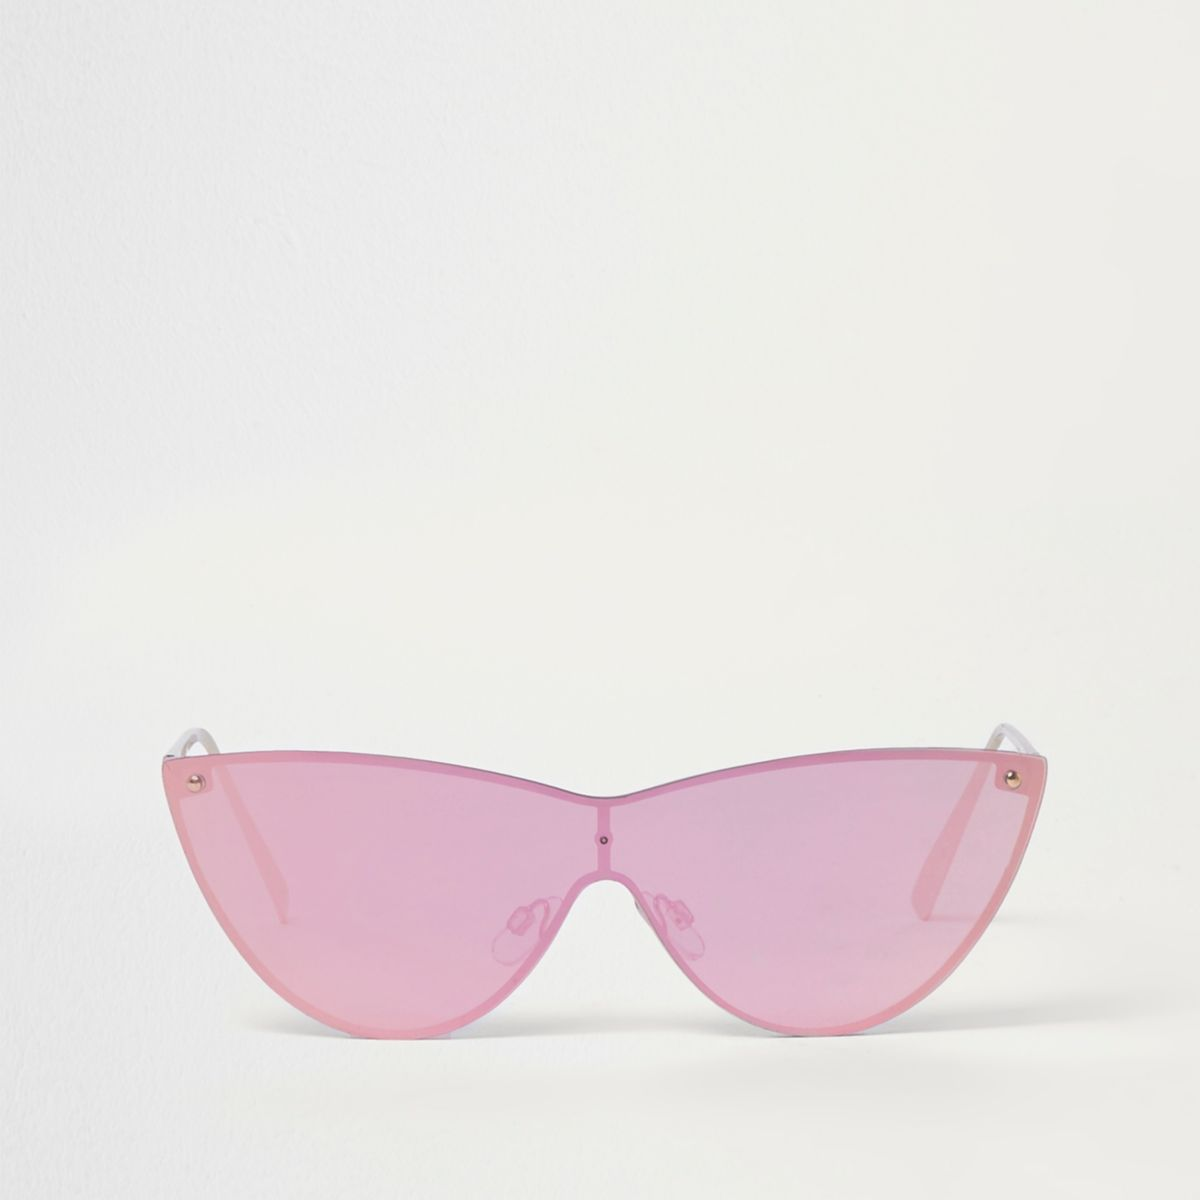 Gold tone visor cat eye pink lens sunglasses